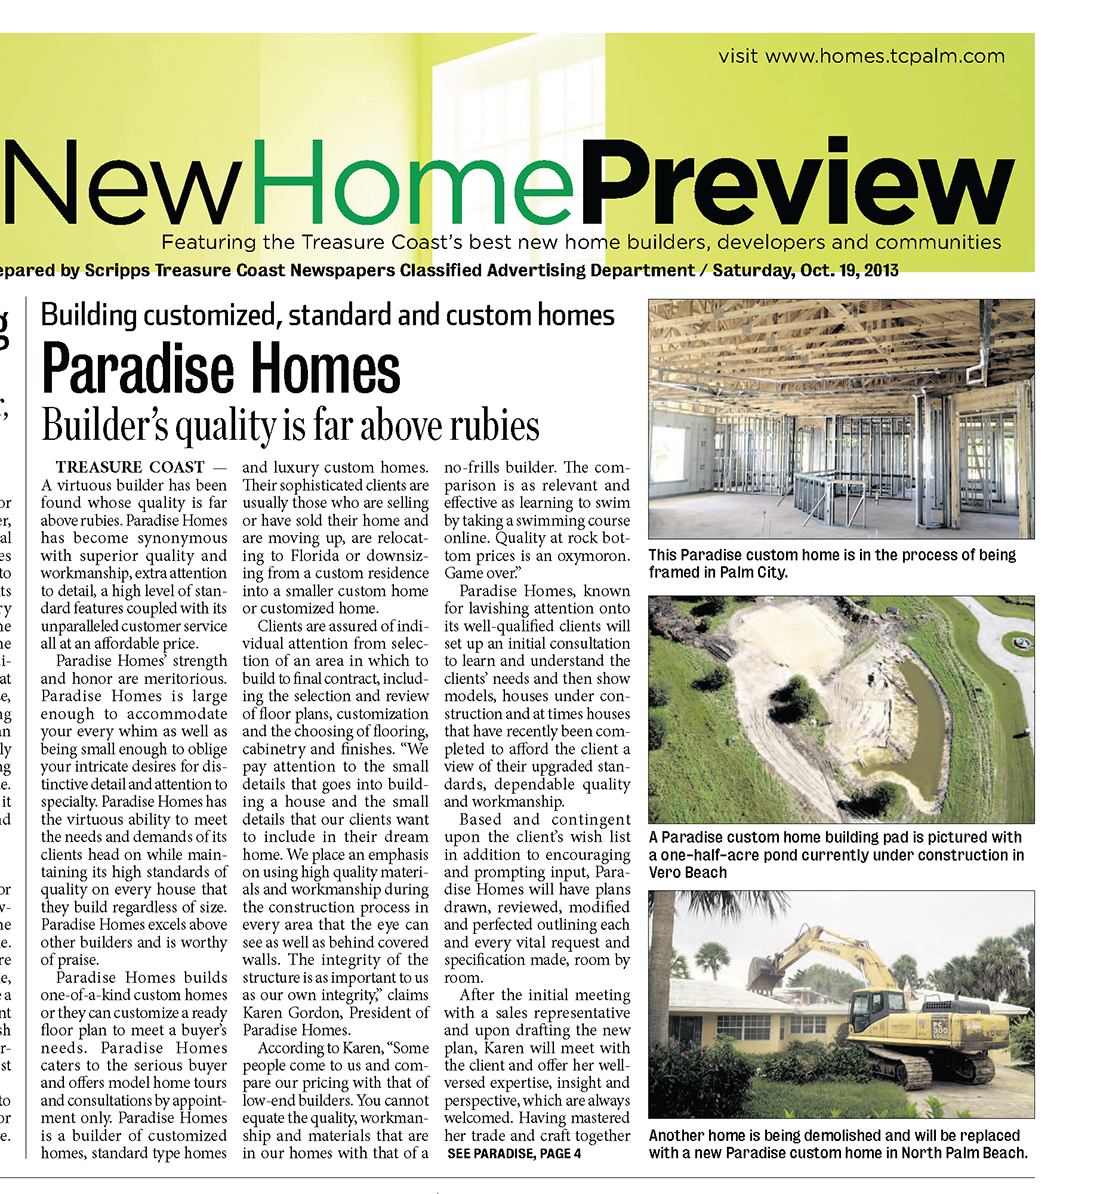 Paradise Homes – Quality Far Above Rubies